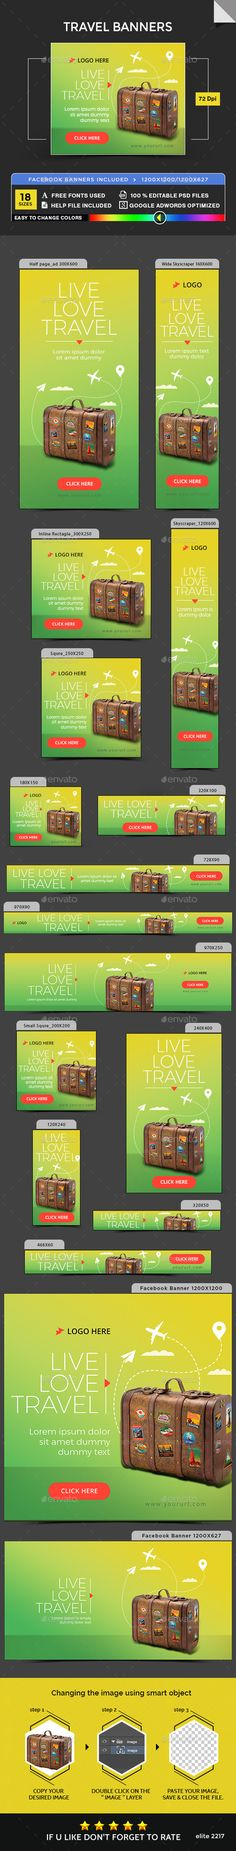 #Travel #Banner #Template - #Banners & #Ads #Web #Elements #Design. Download here: https://graphicriver.net/item/travel-banners/19837102?ref=yinkira